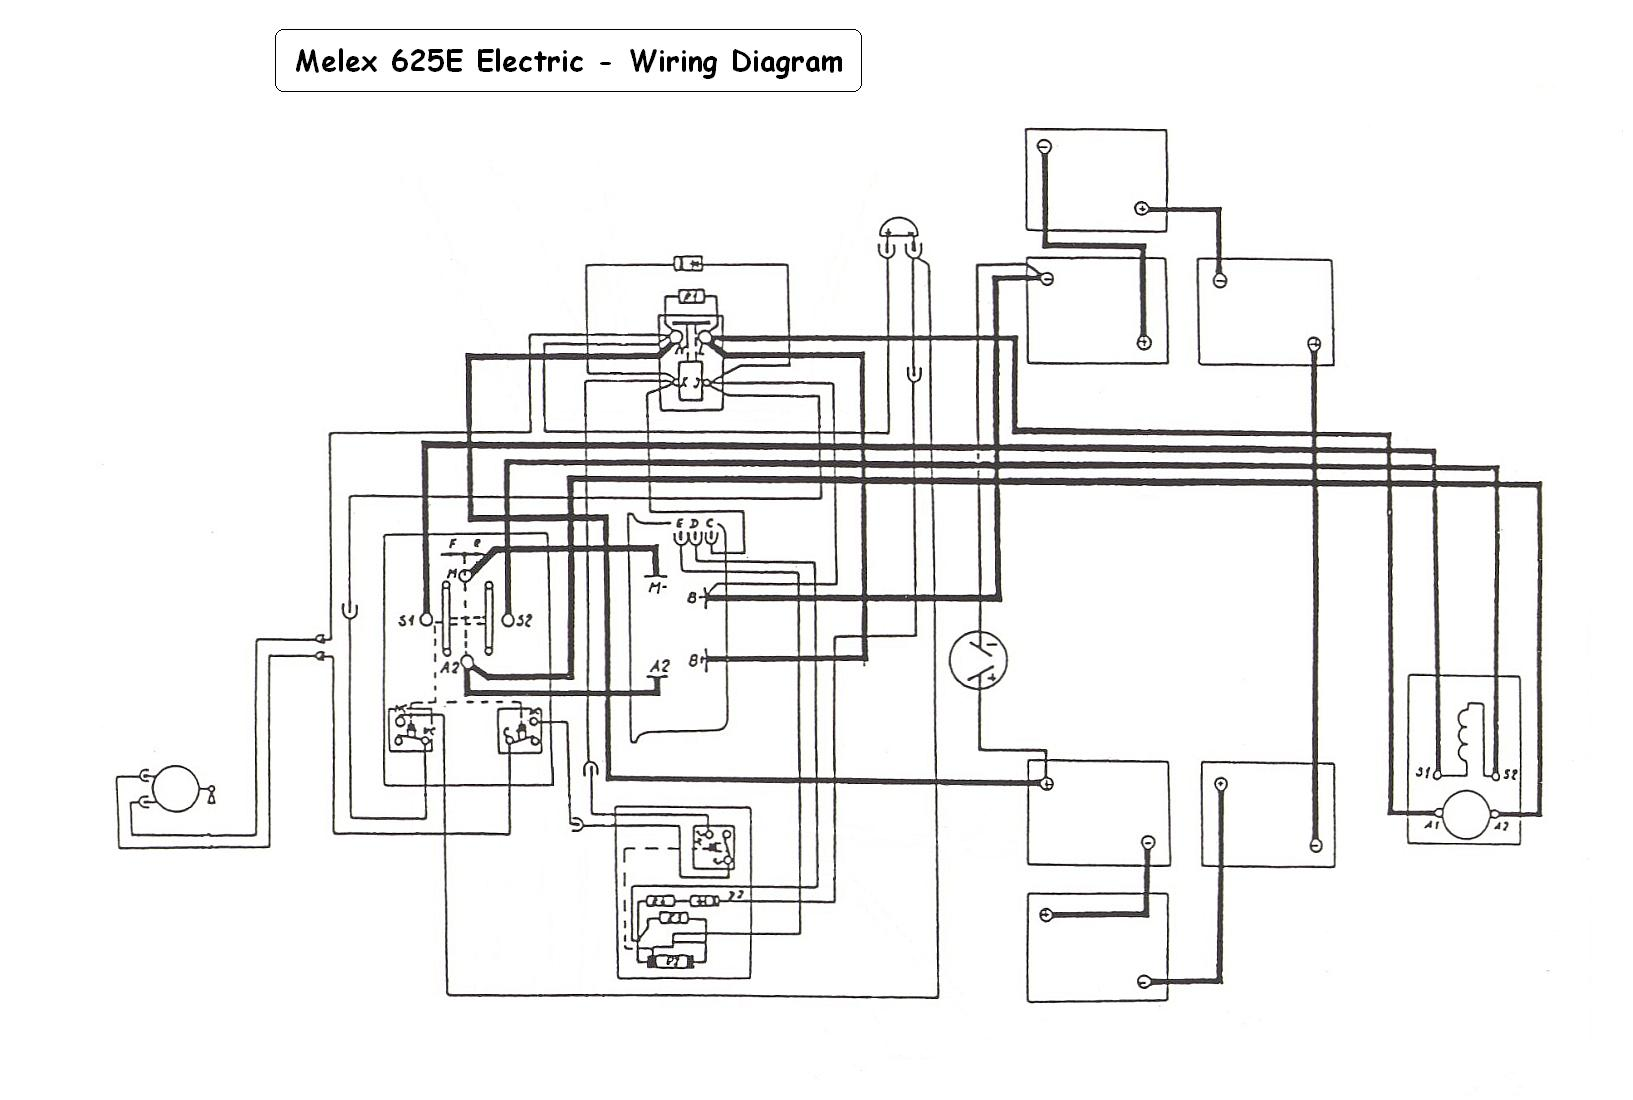 [DIAGRAM_5NL]  46F6E Otis Golf Cart Wiring Diagram | Wiring Library | Wiring Diagram Hyundai Golf Cart |  | Wiring Library